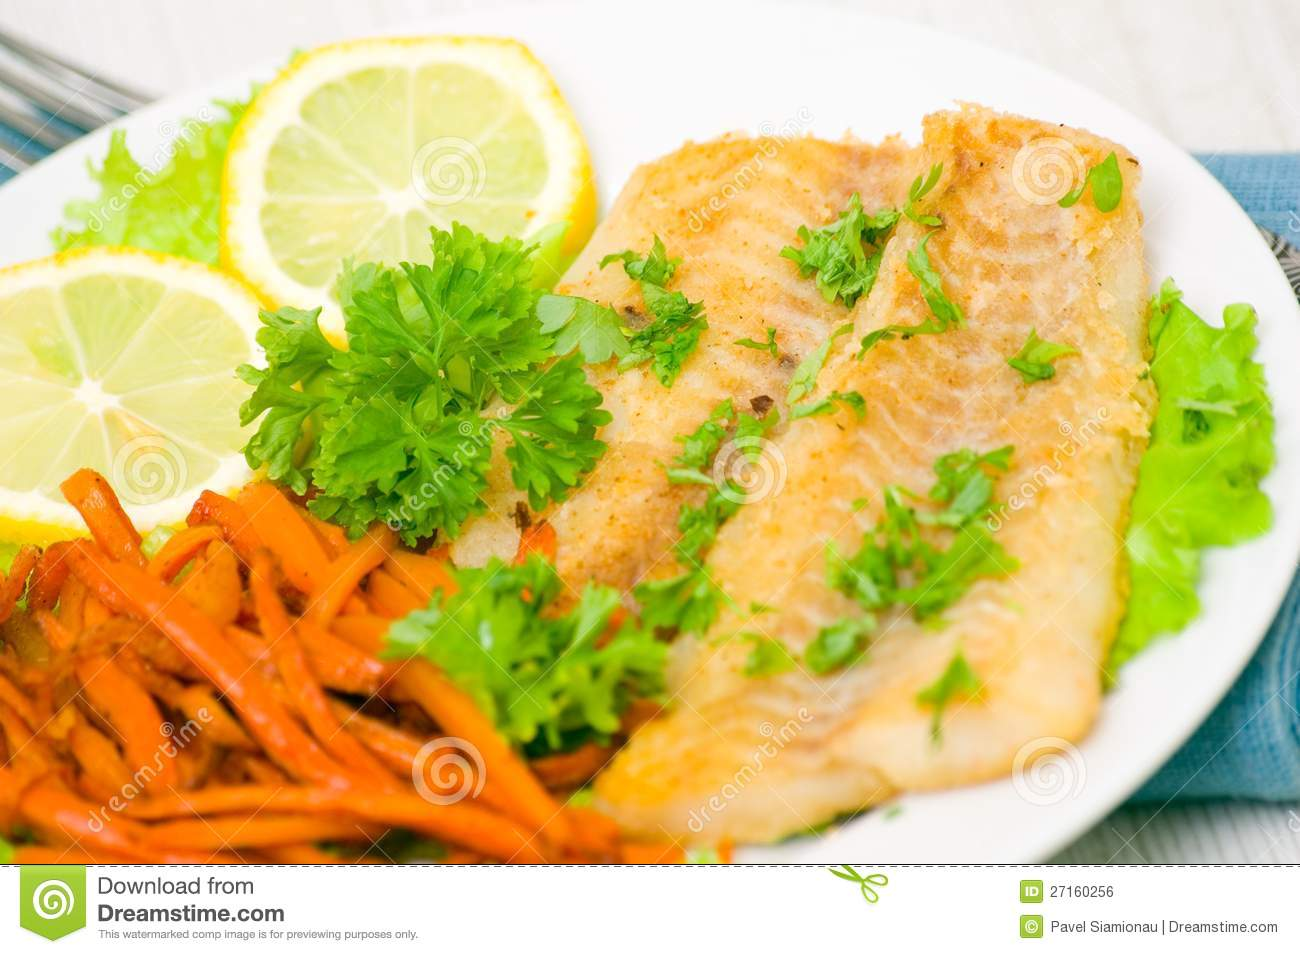 Fried fish fillet with vegetables royalty free stock image for Fried fish fillet